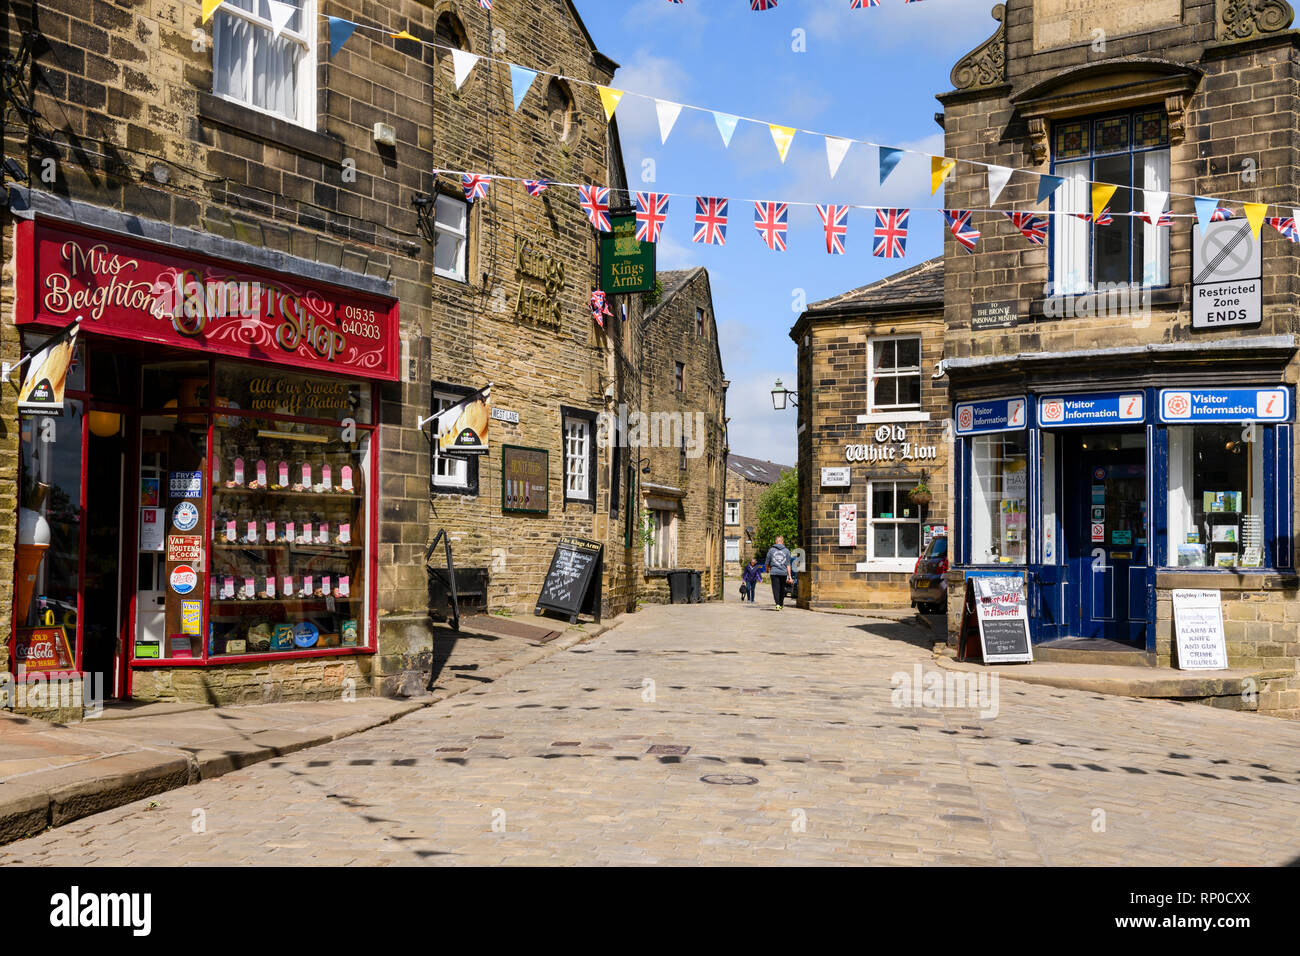 Traditional sweet shop, historic inns, Tourist Information & bunting over cobbled road - Main Street, Haworth village, West Yorkshire, England, UK. - Stock Image